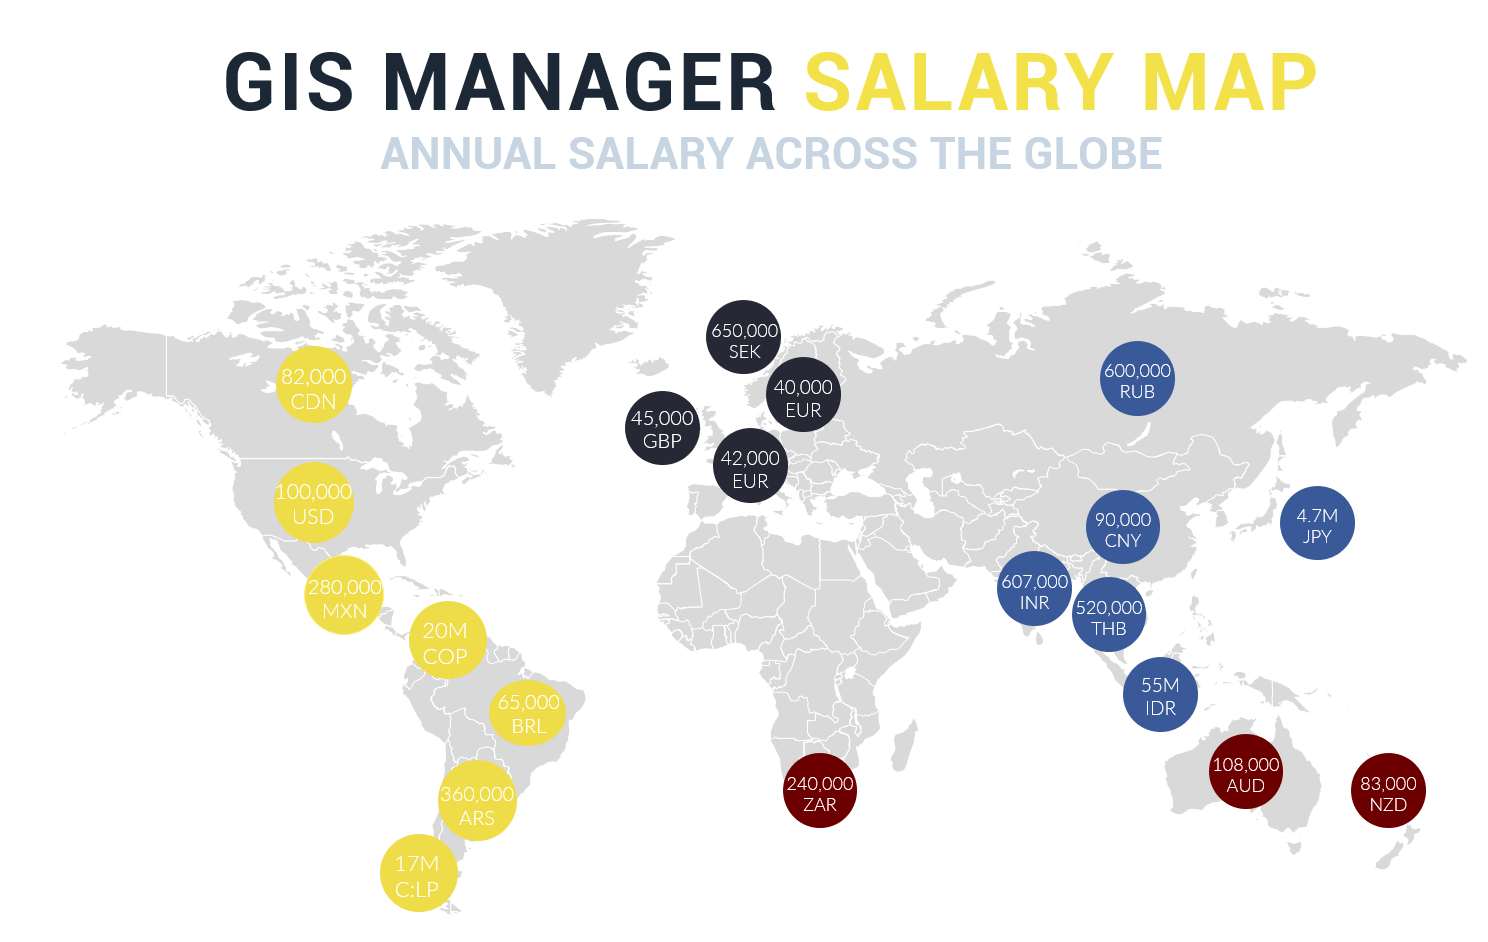 GIS Manager Salary Map